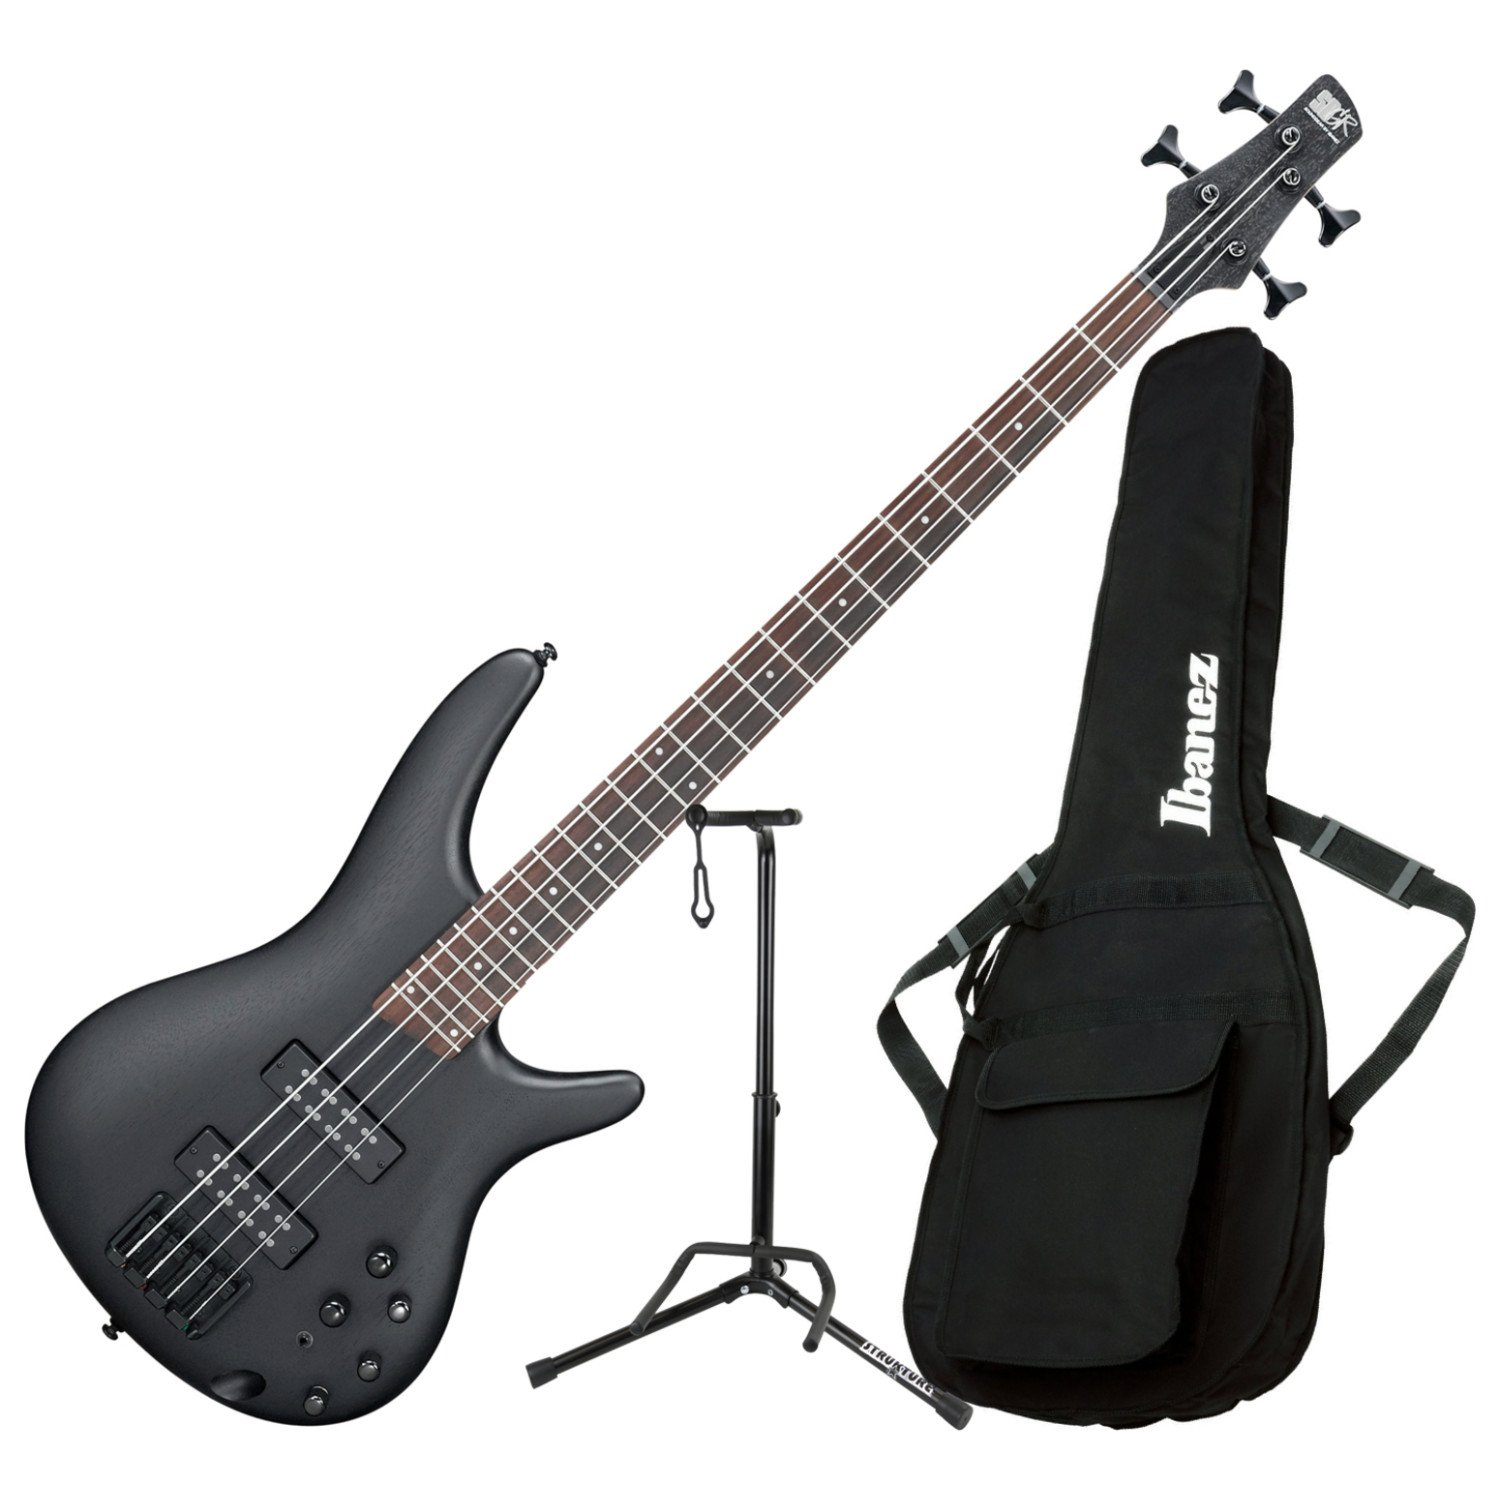 Ibanez SR300EB WK 4 String Electric Bass Guitar Weathered Black with Gig Bag and Stand